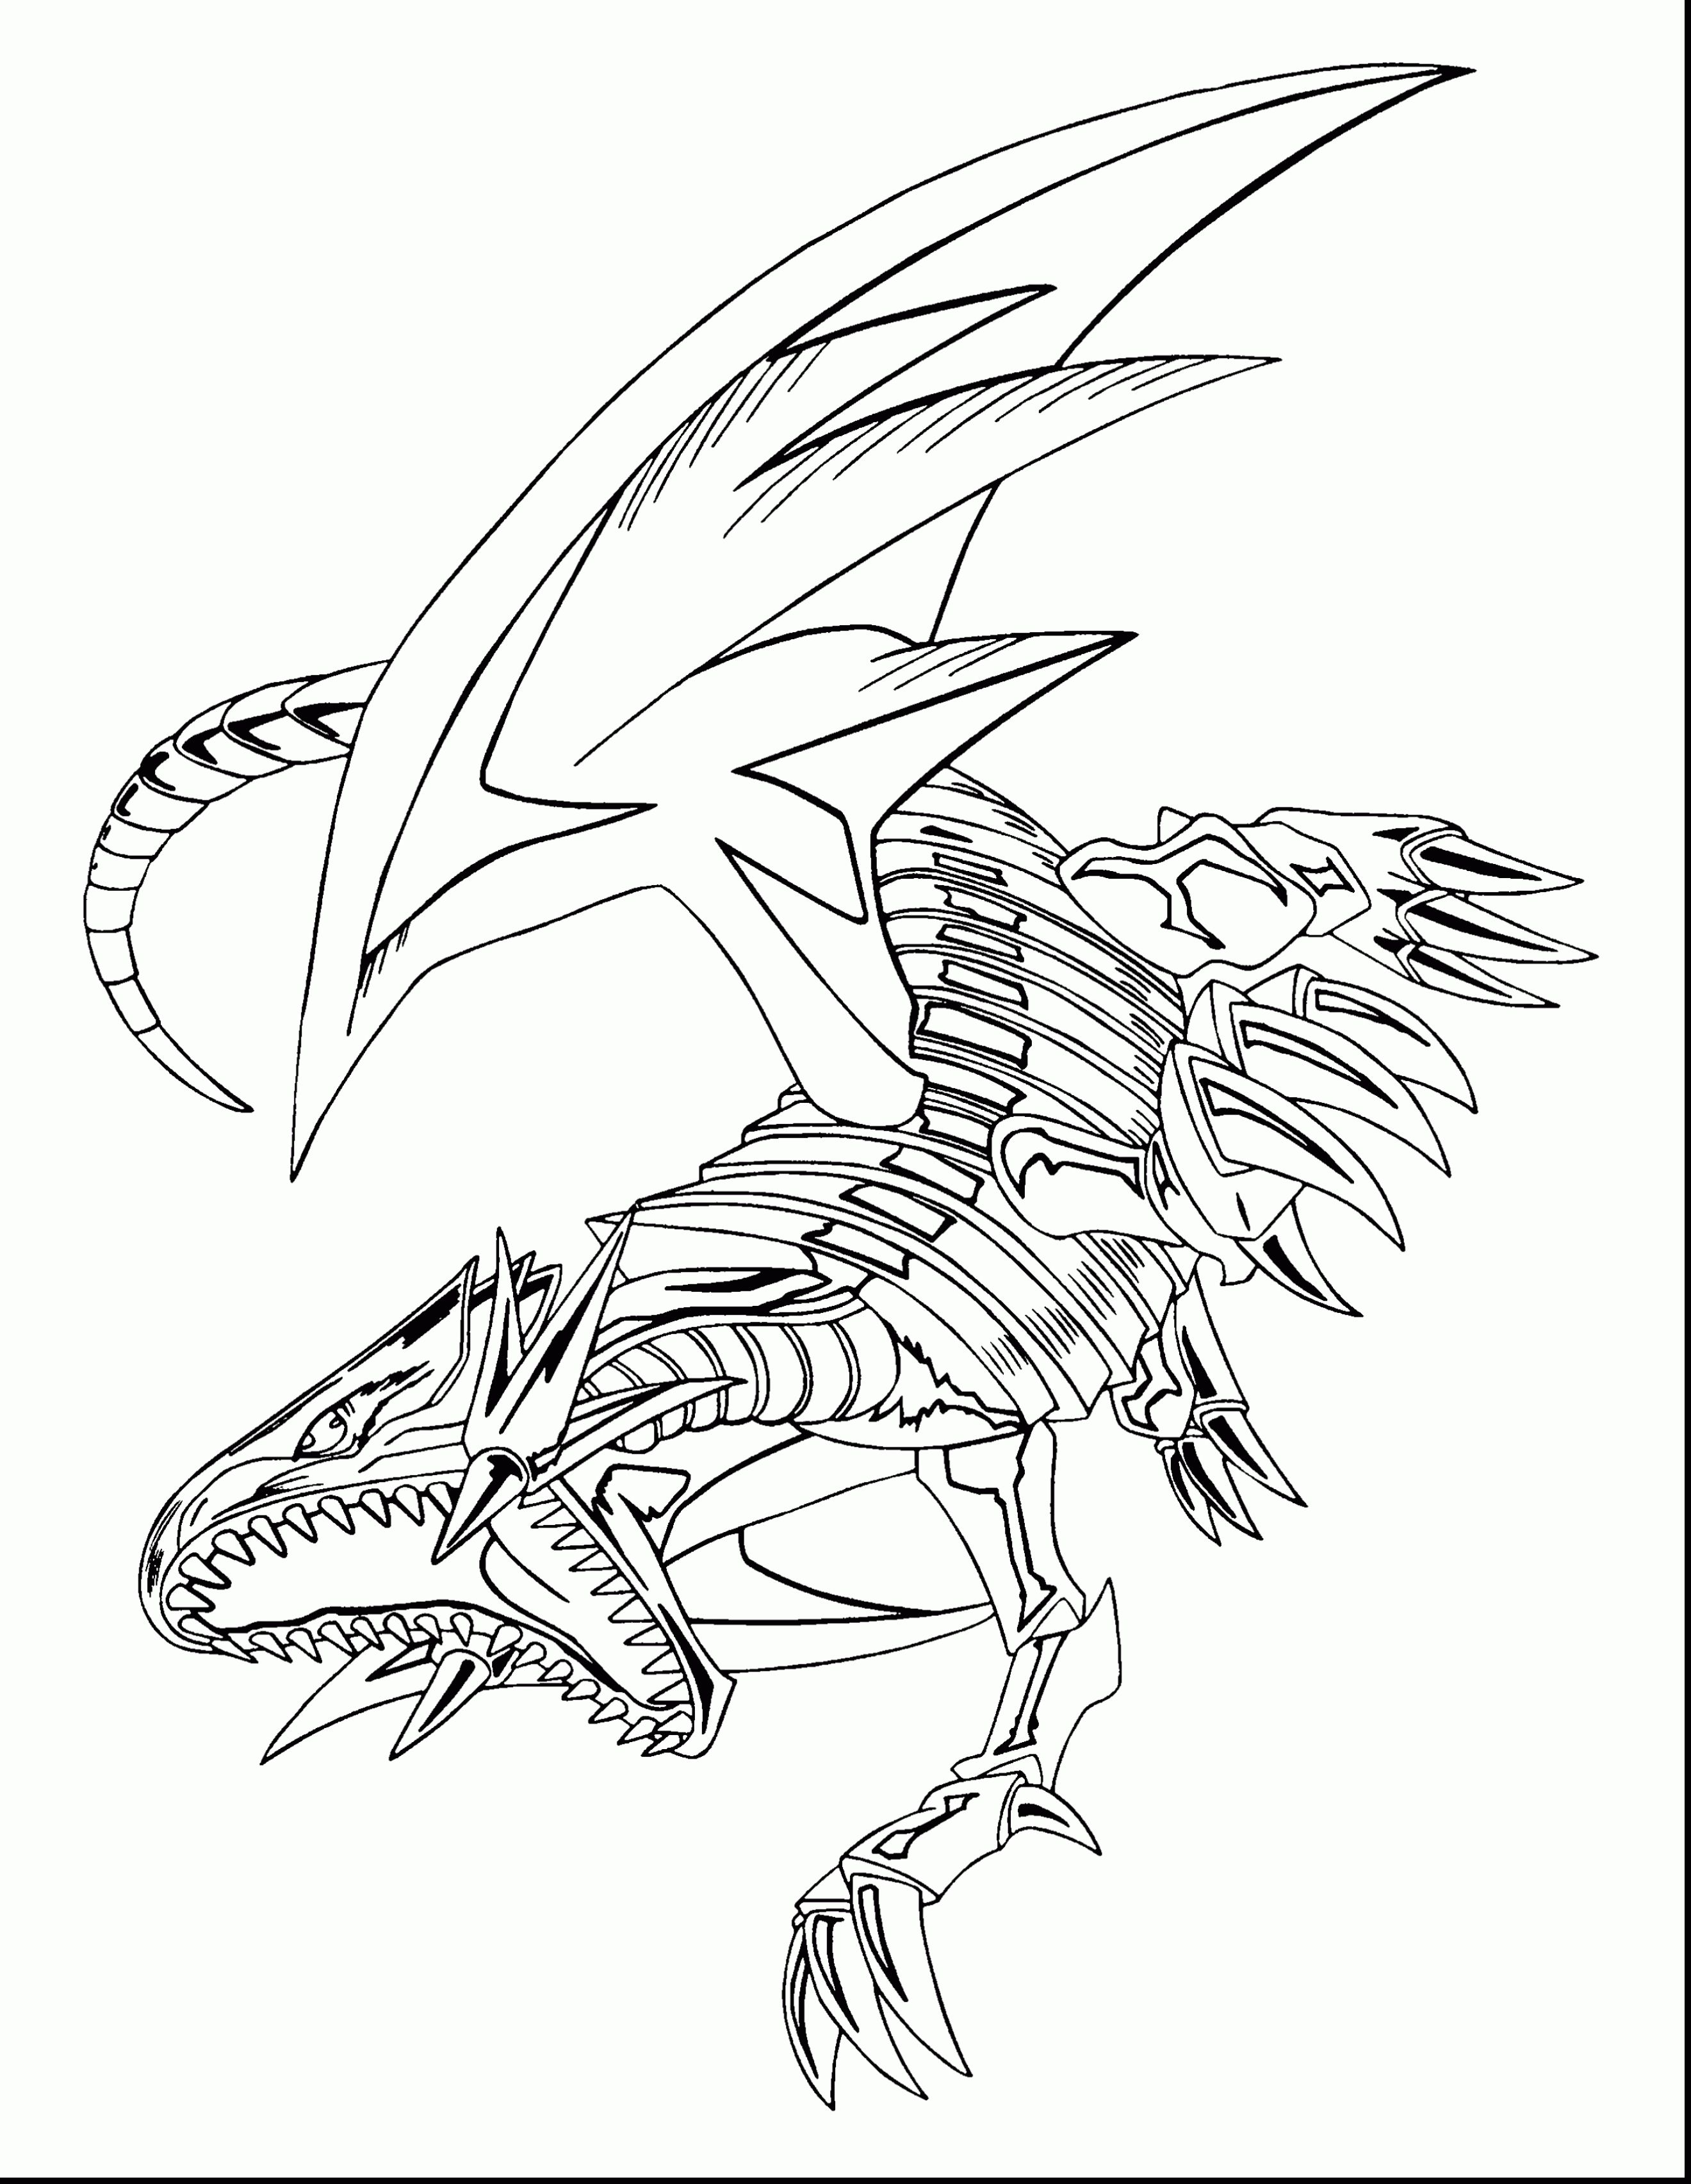 25 Coloring Pages 4 Wheeler | Coloring Pages | Pinterest | Origami